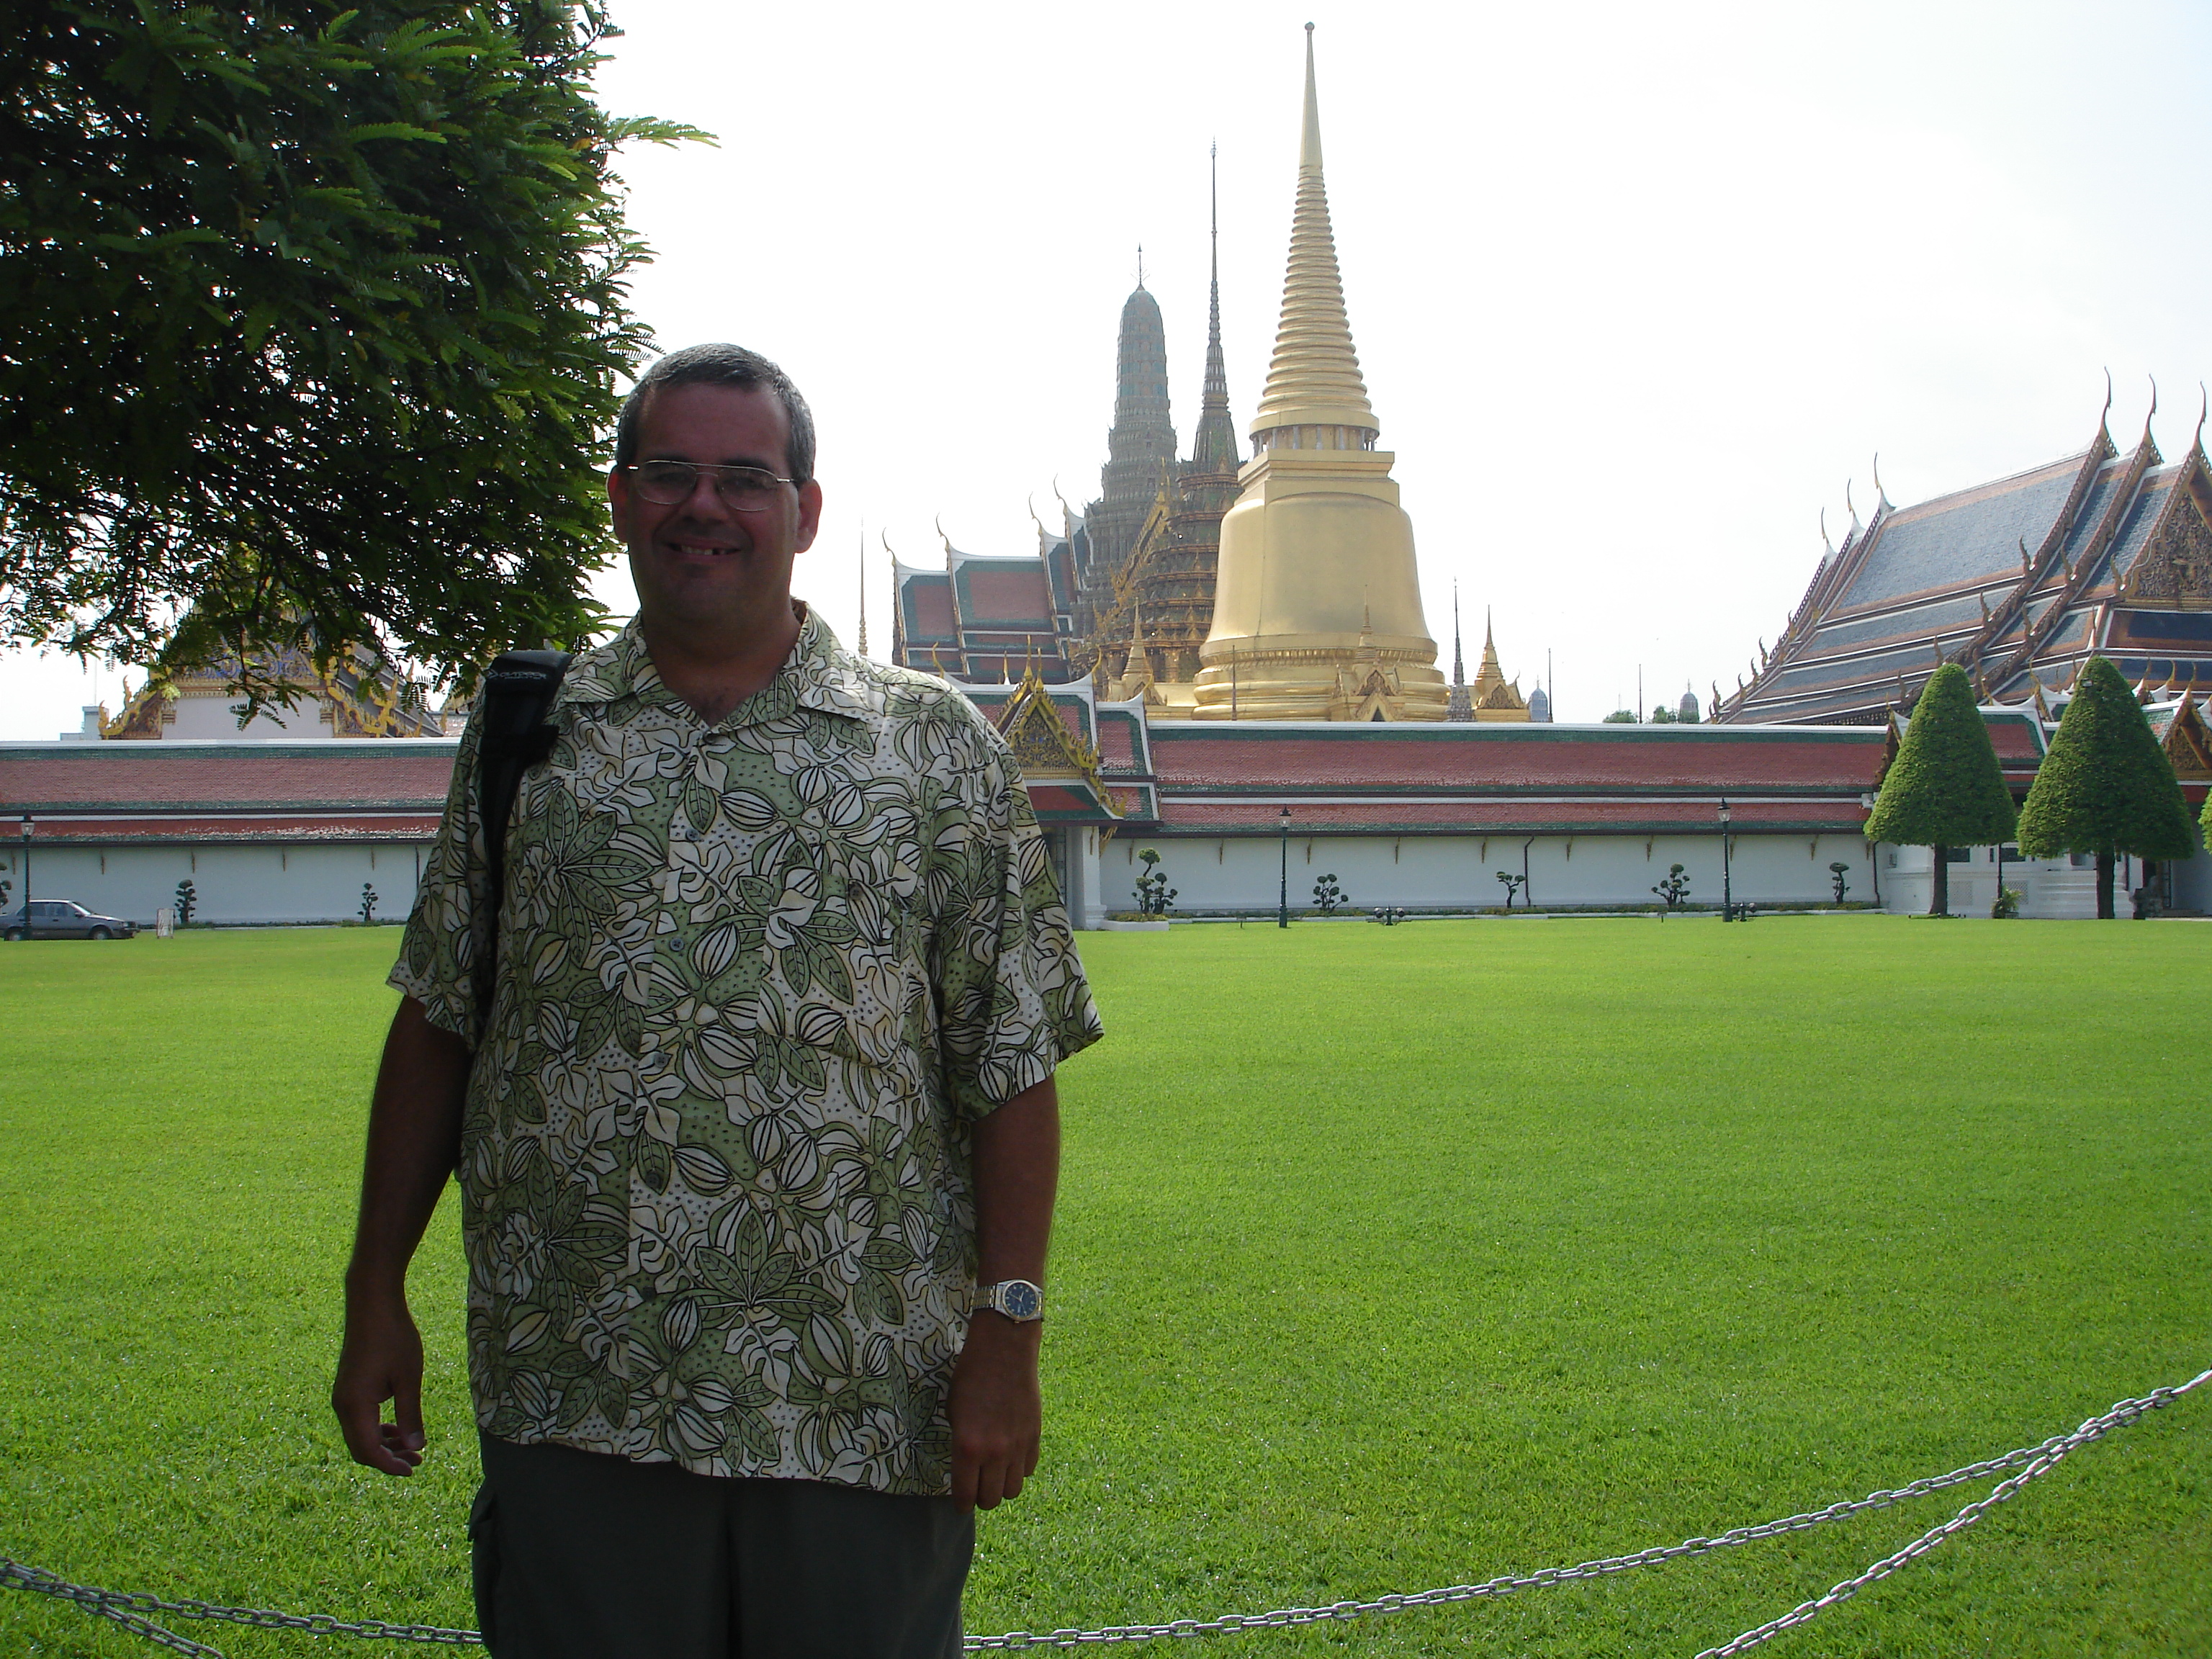 Mark Jochim (me!) at the Grand Palace in Bangkok with the same view behind me as portrayed on Scott #561 issued in 1970. Photo taken by Sangwan Saethem on May 17, 2006.